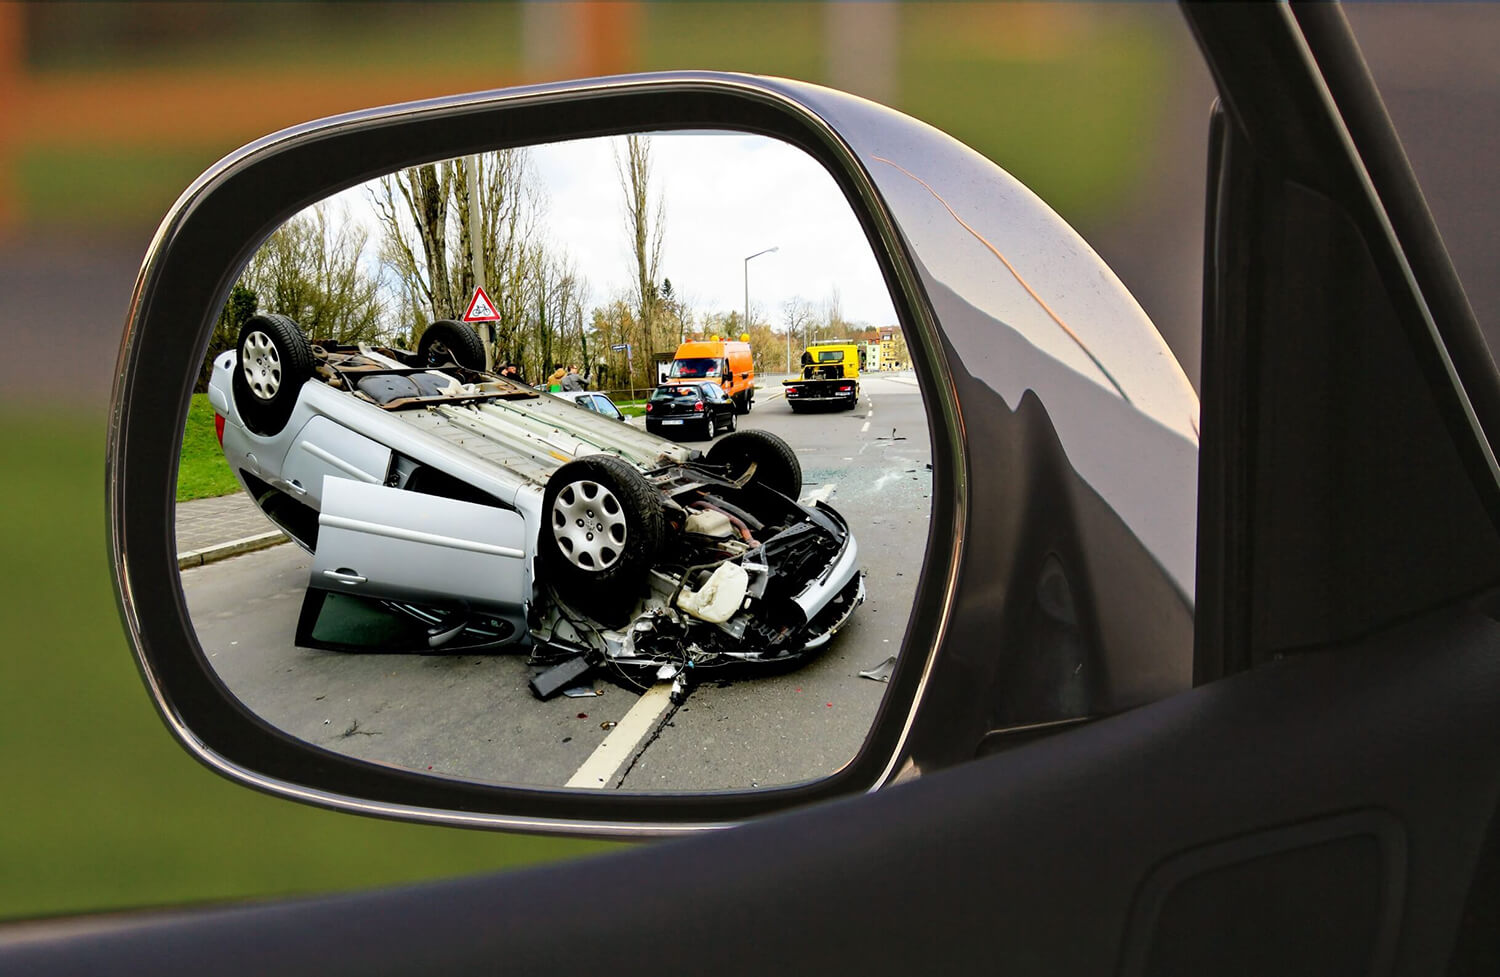 Penal Provision on Rash and Negligent Driving